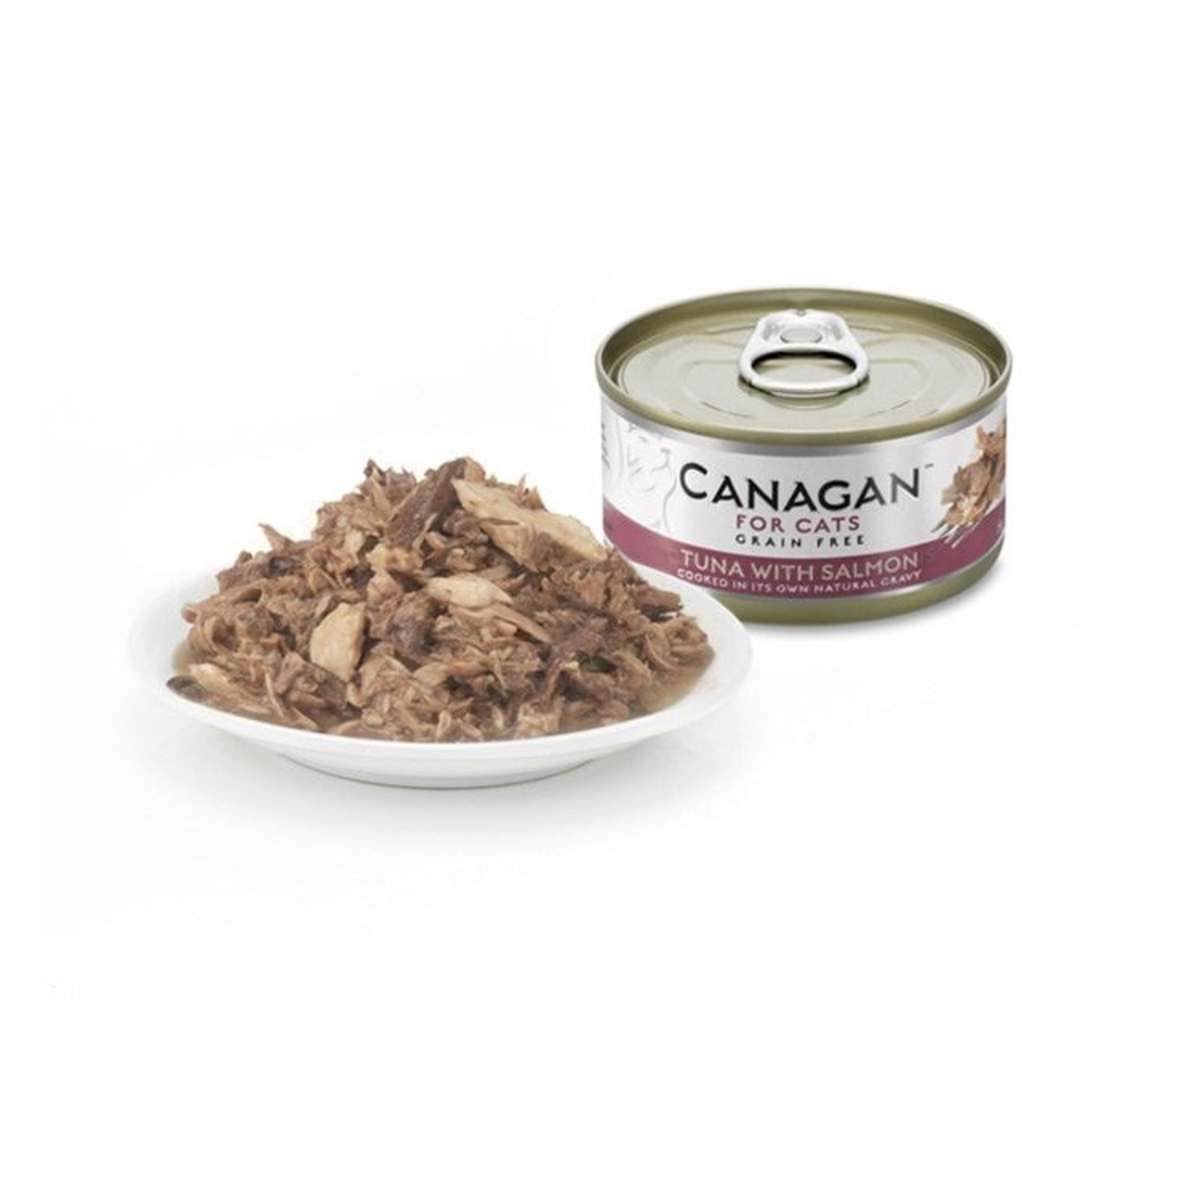 gluten-free Canned tuna with salmon cat - 75g